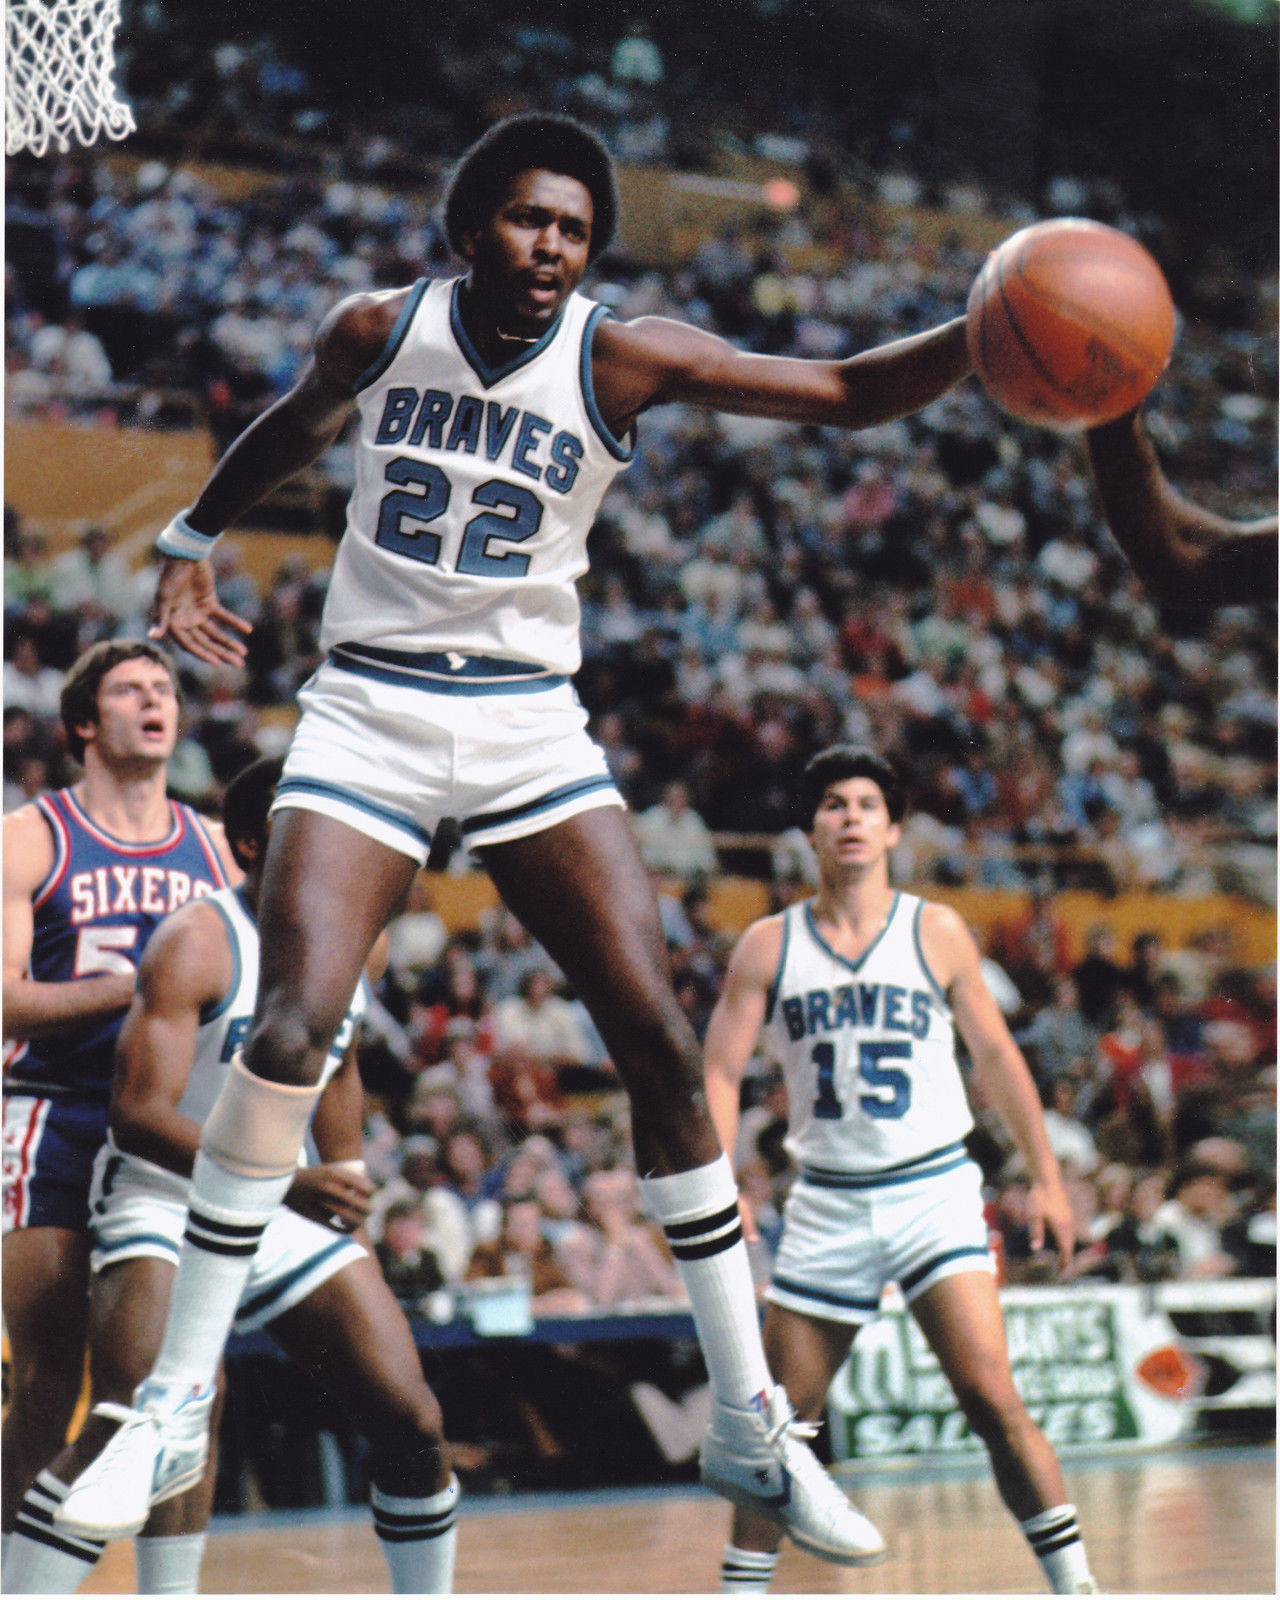 Braves 76 77 Home Moses Malone